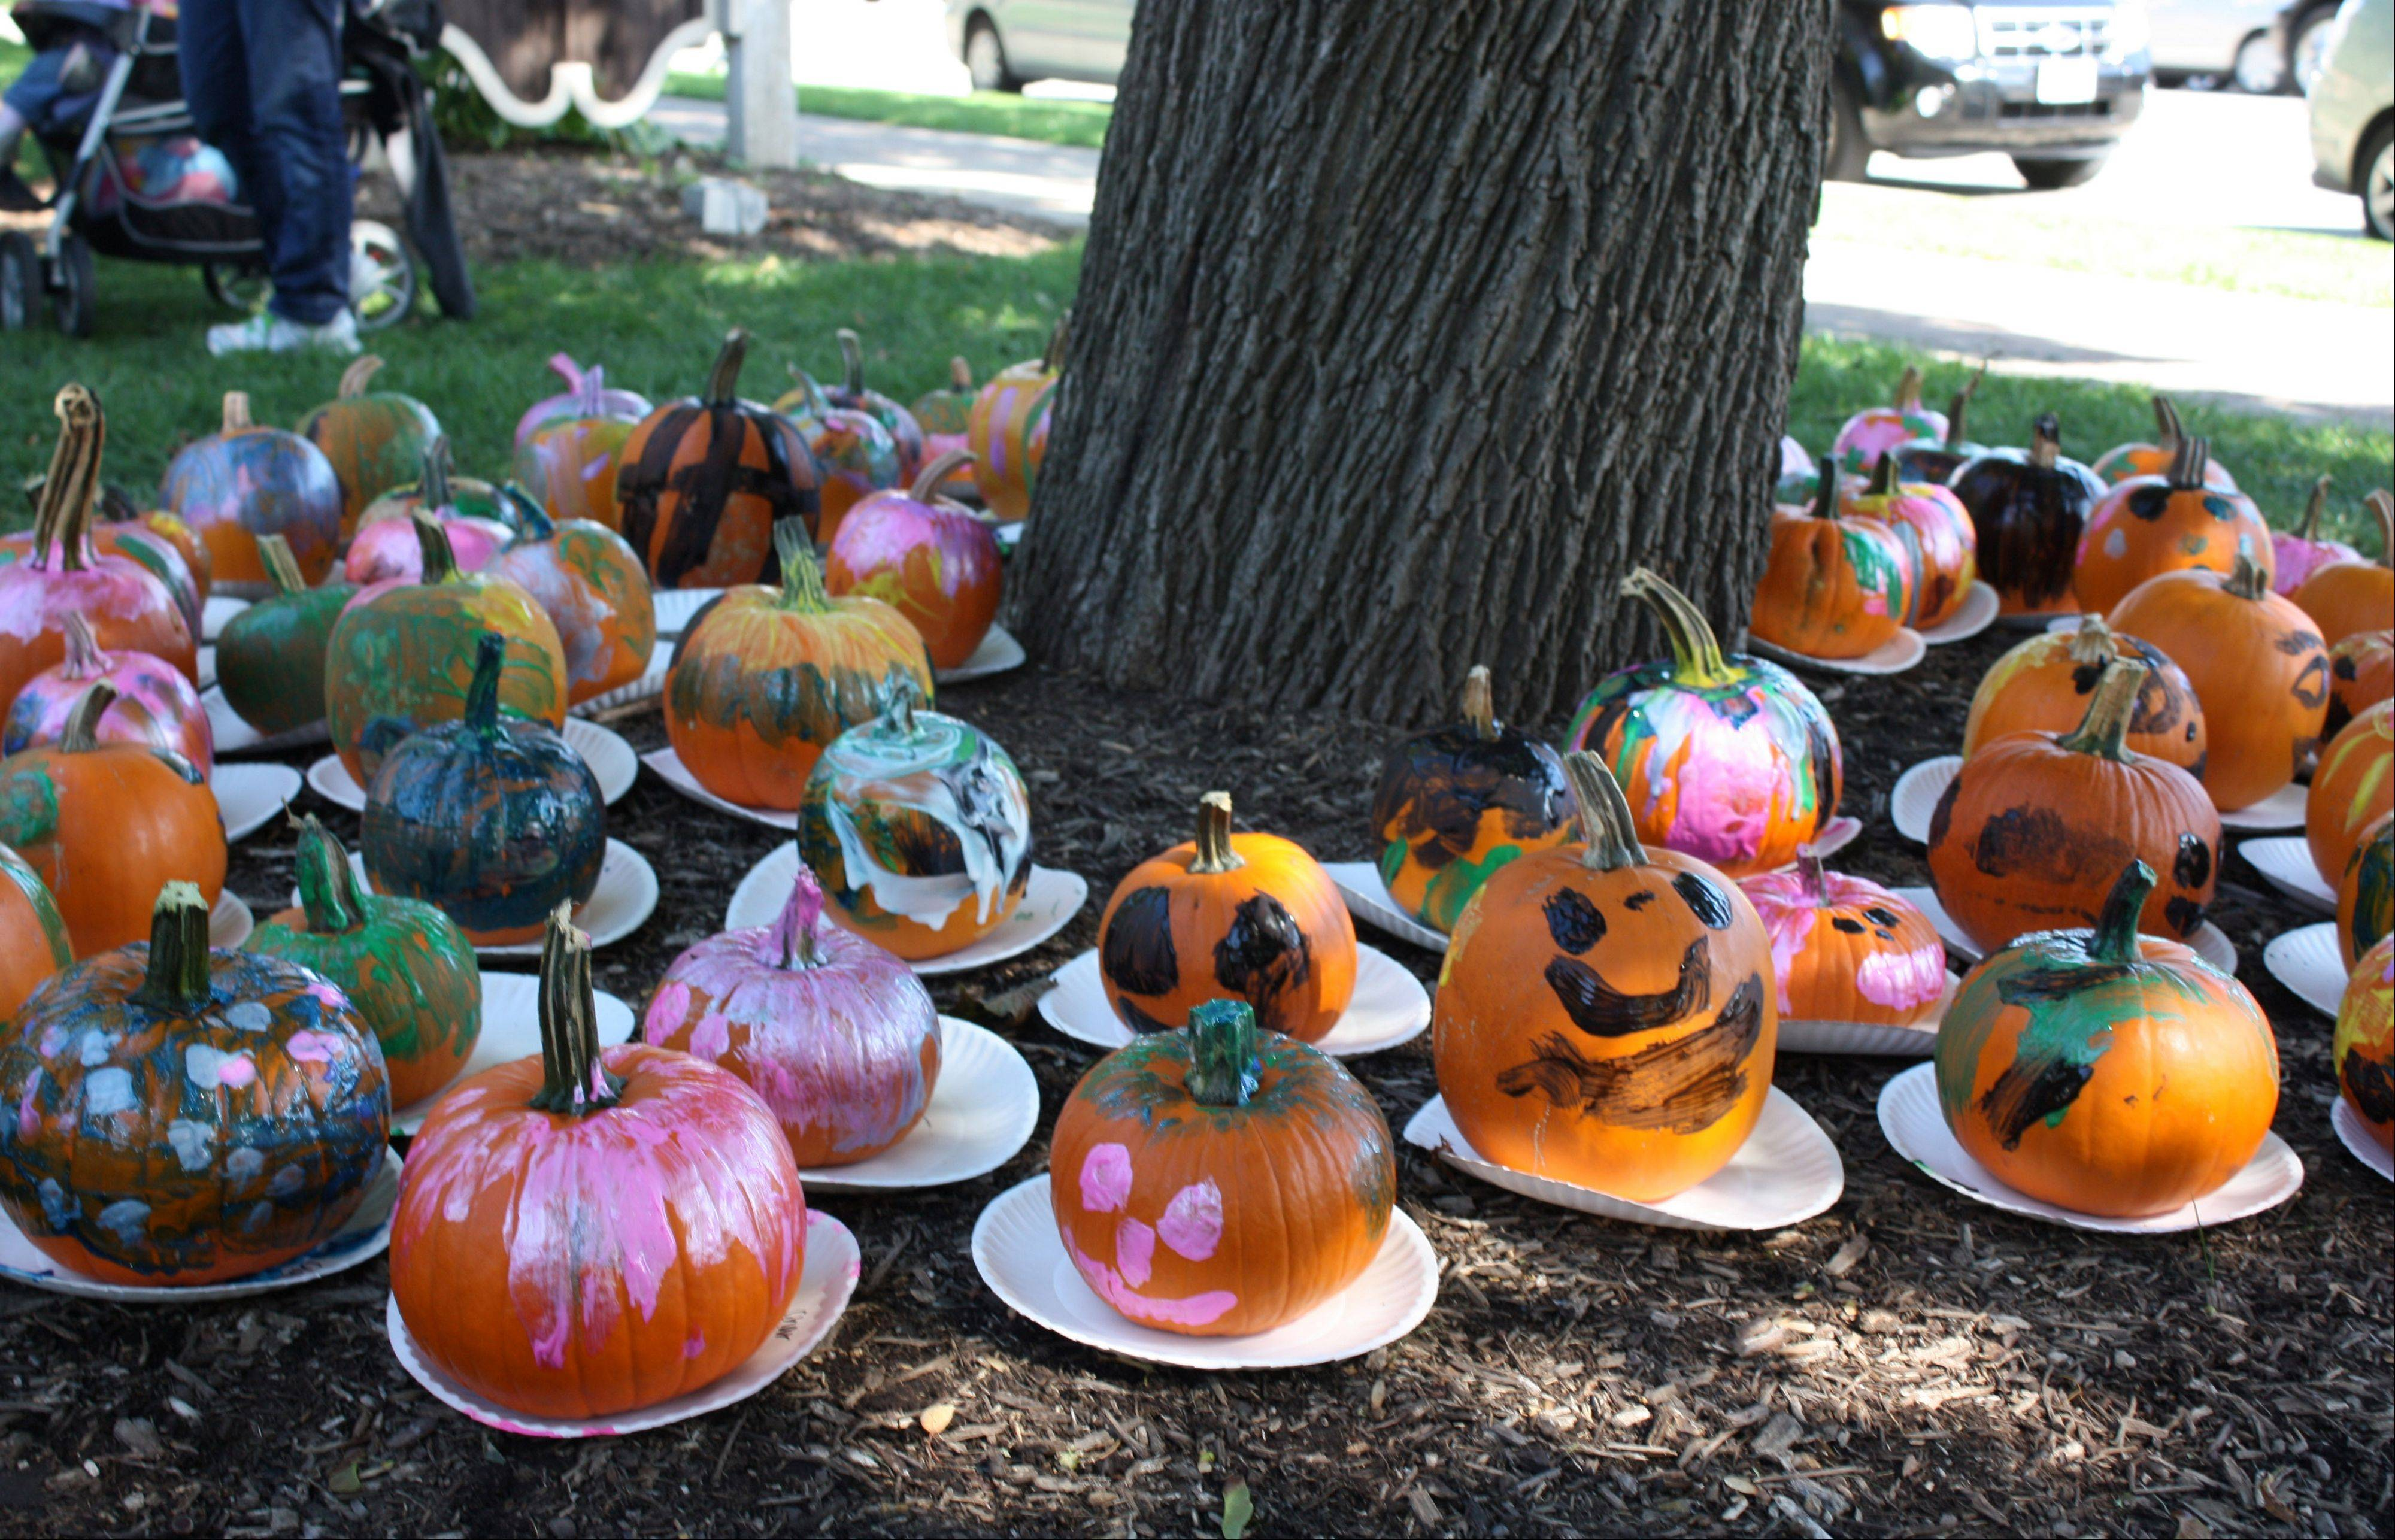 Painted pumpkins surround a tree at last year's PumpkinFest, presented by the Libertyville Junior Woman's Club. This year's event is Saturday, Oct. 13.